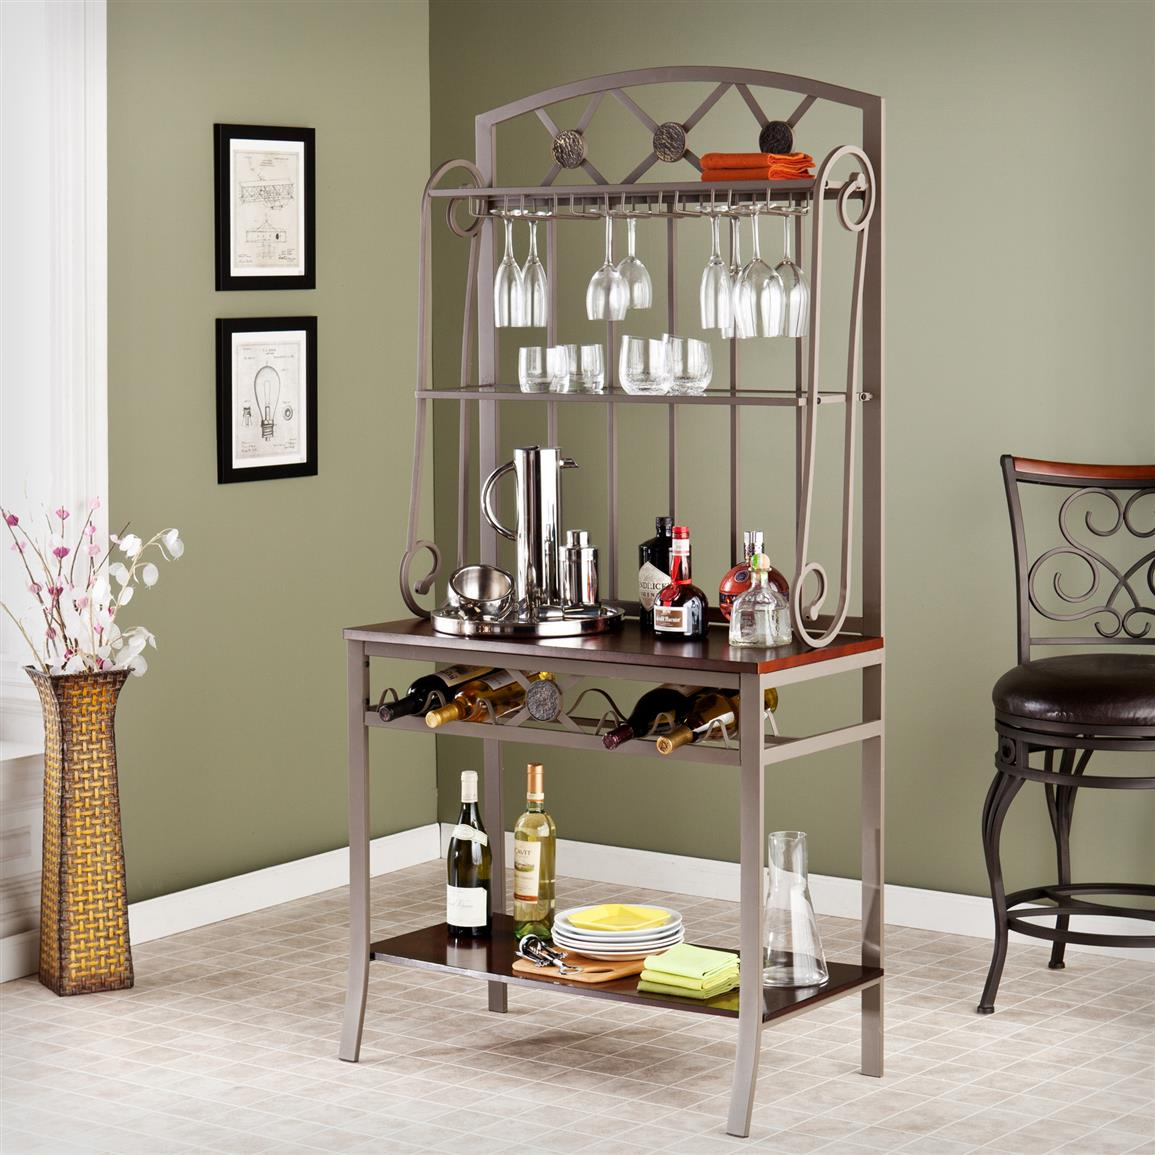 Best Decorative Bakers Rack With Wine Storage 579110 Kitchen This Month